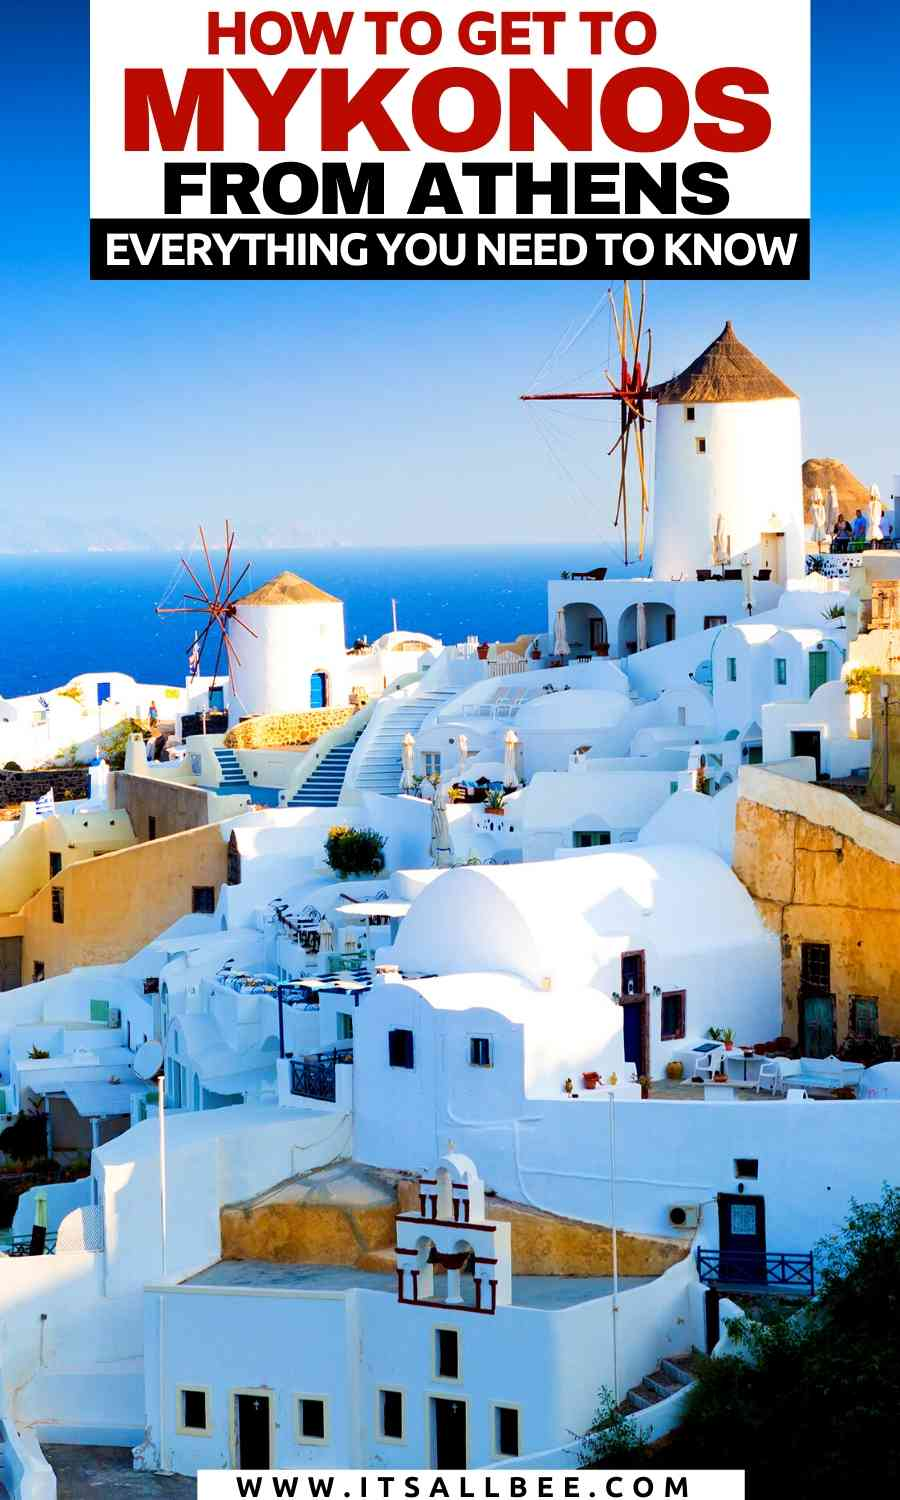 Get to Mykonos from Athens